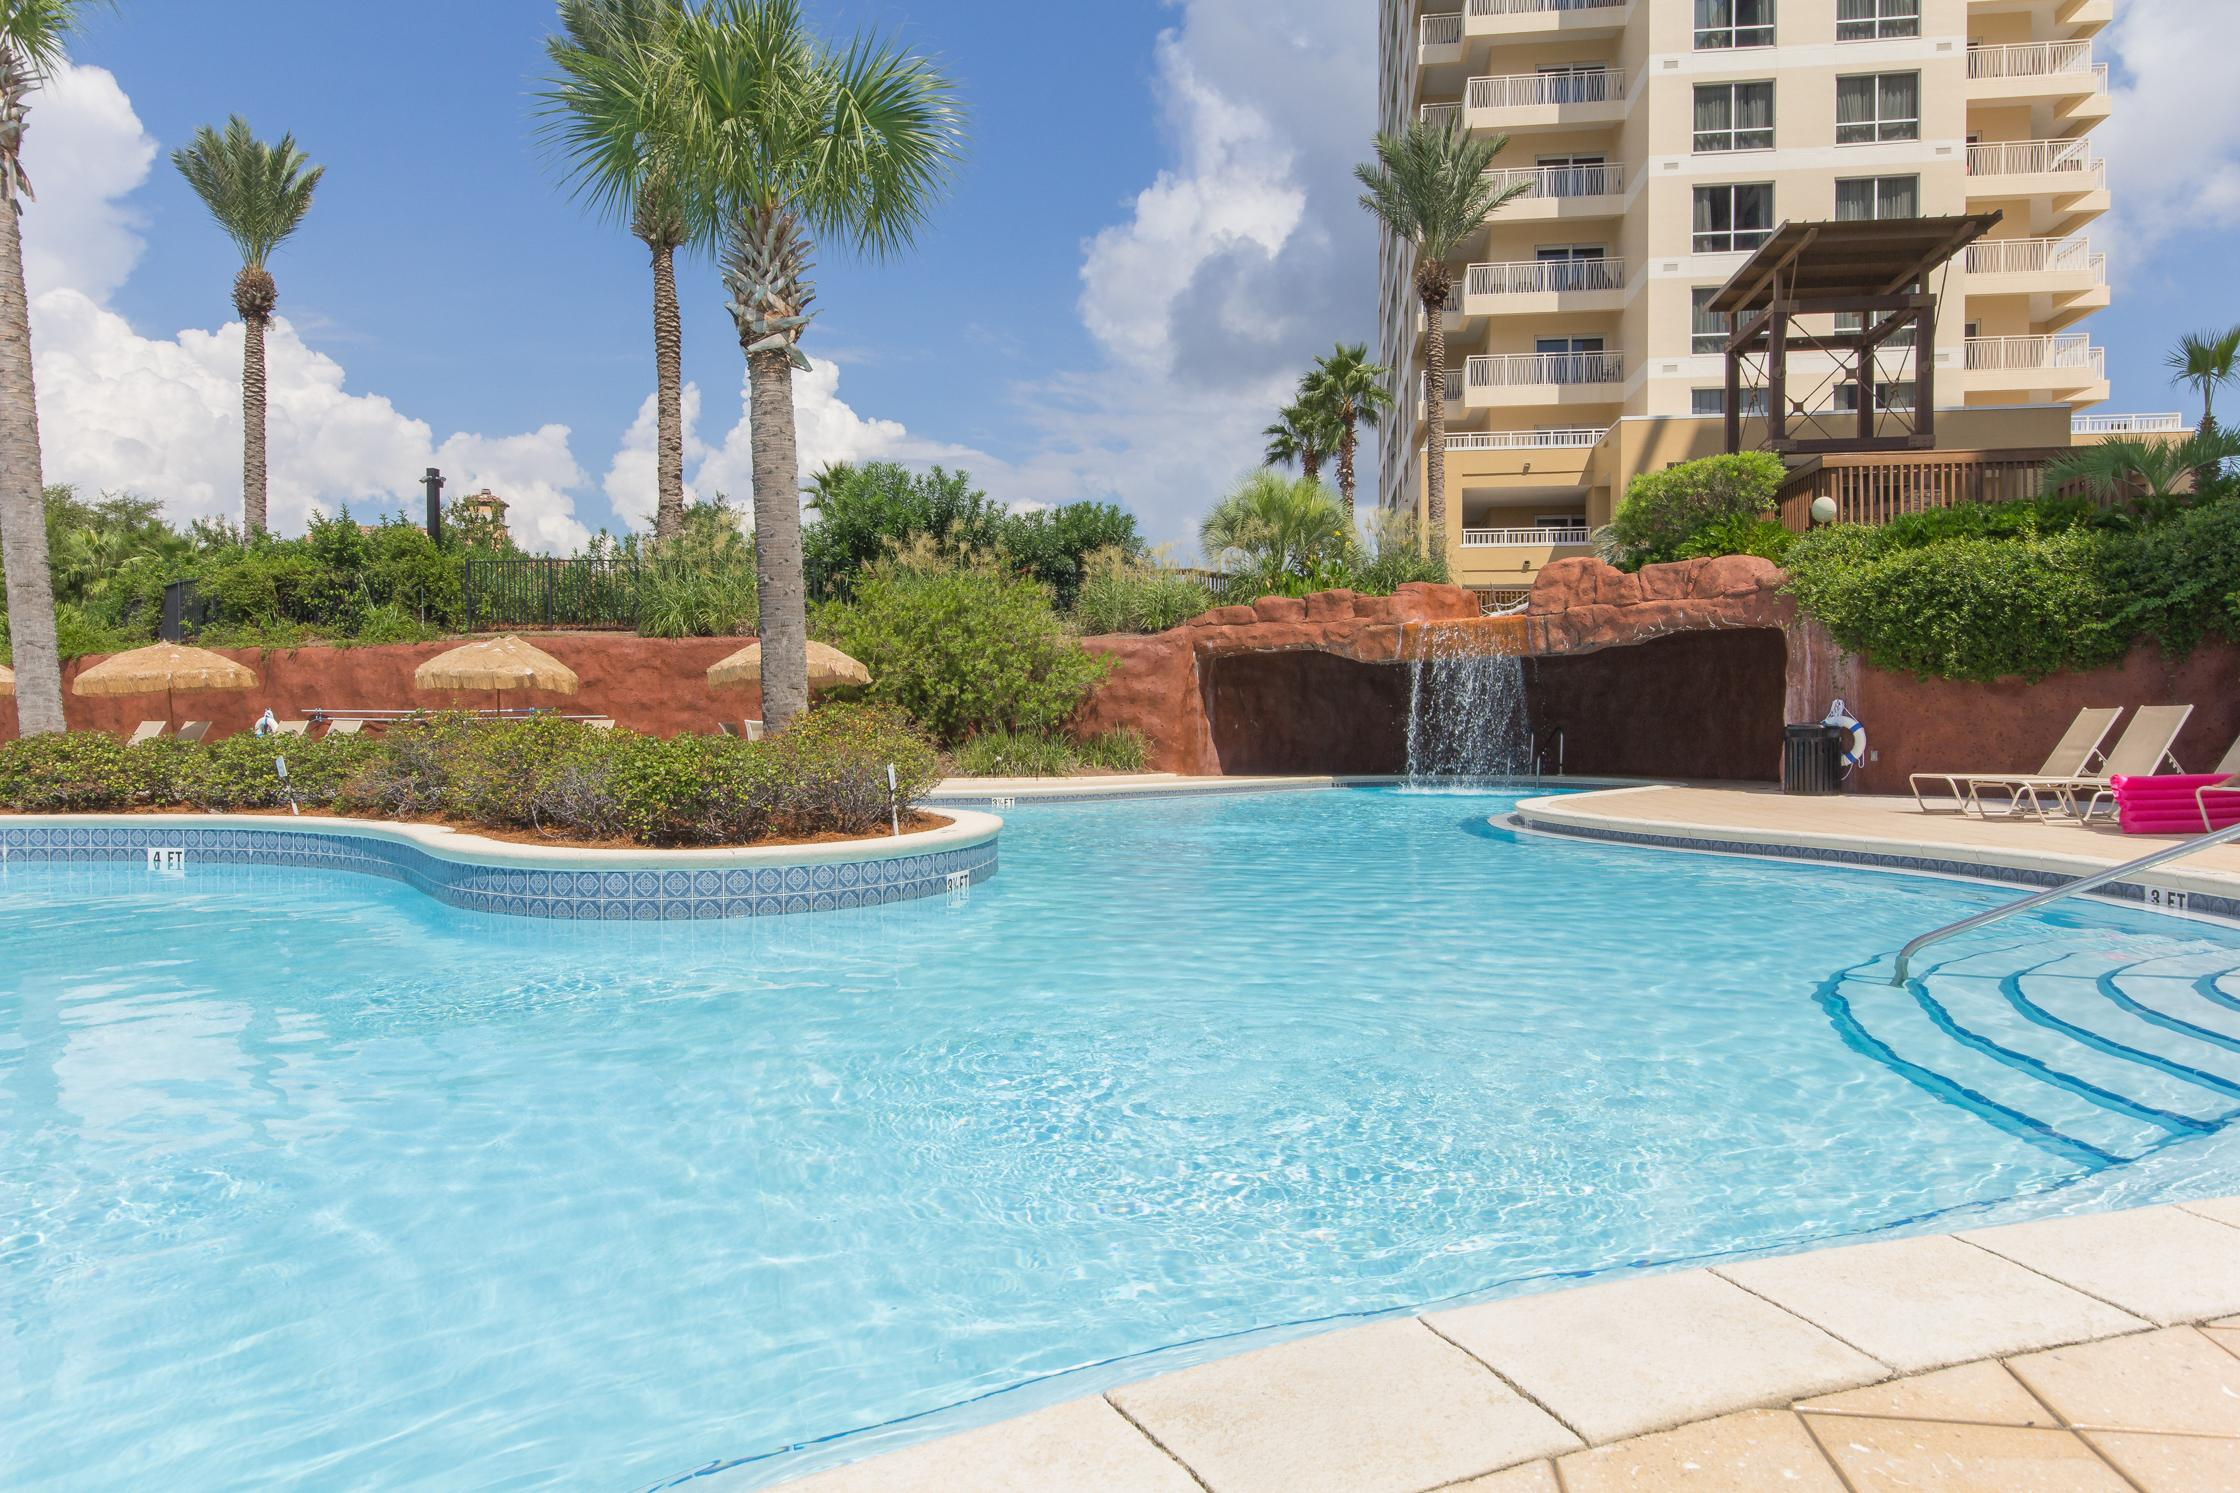 Property Image 2 - Two-Unit Condo Retreat with Resort Frills, Near the Beach